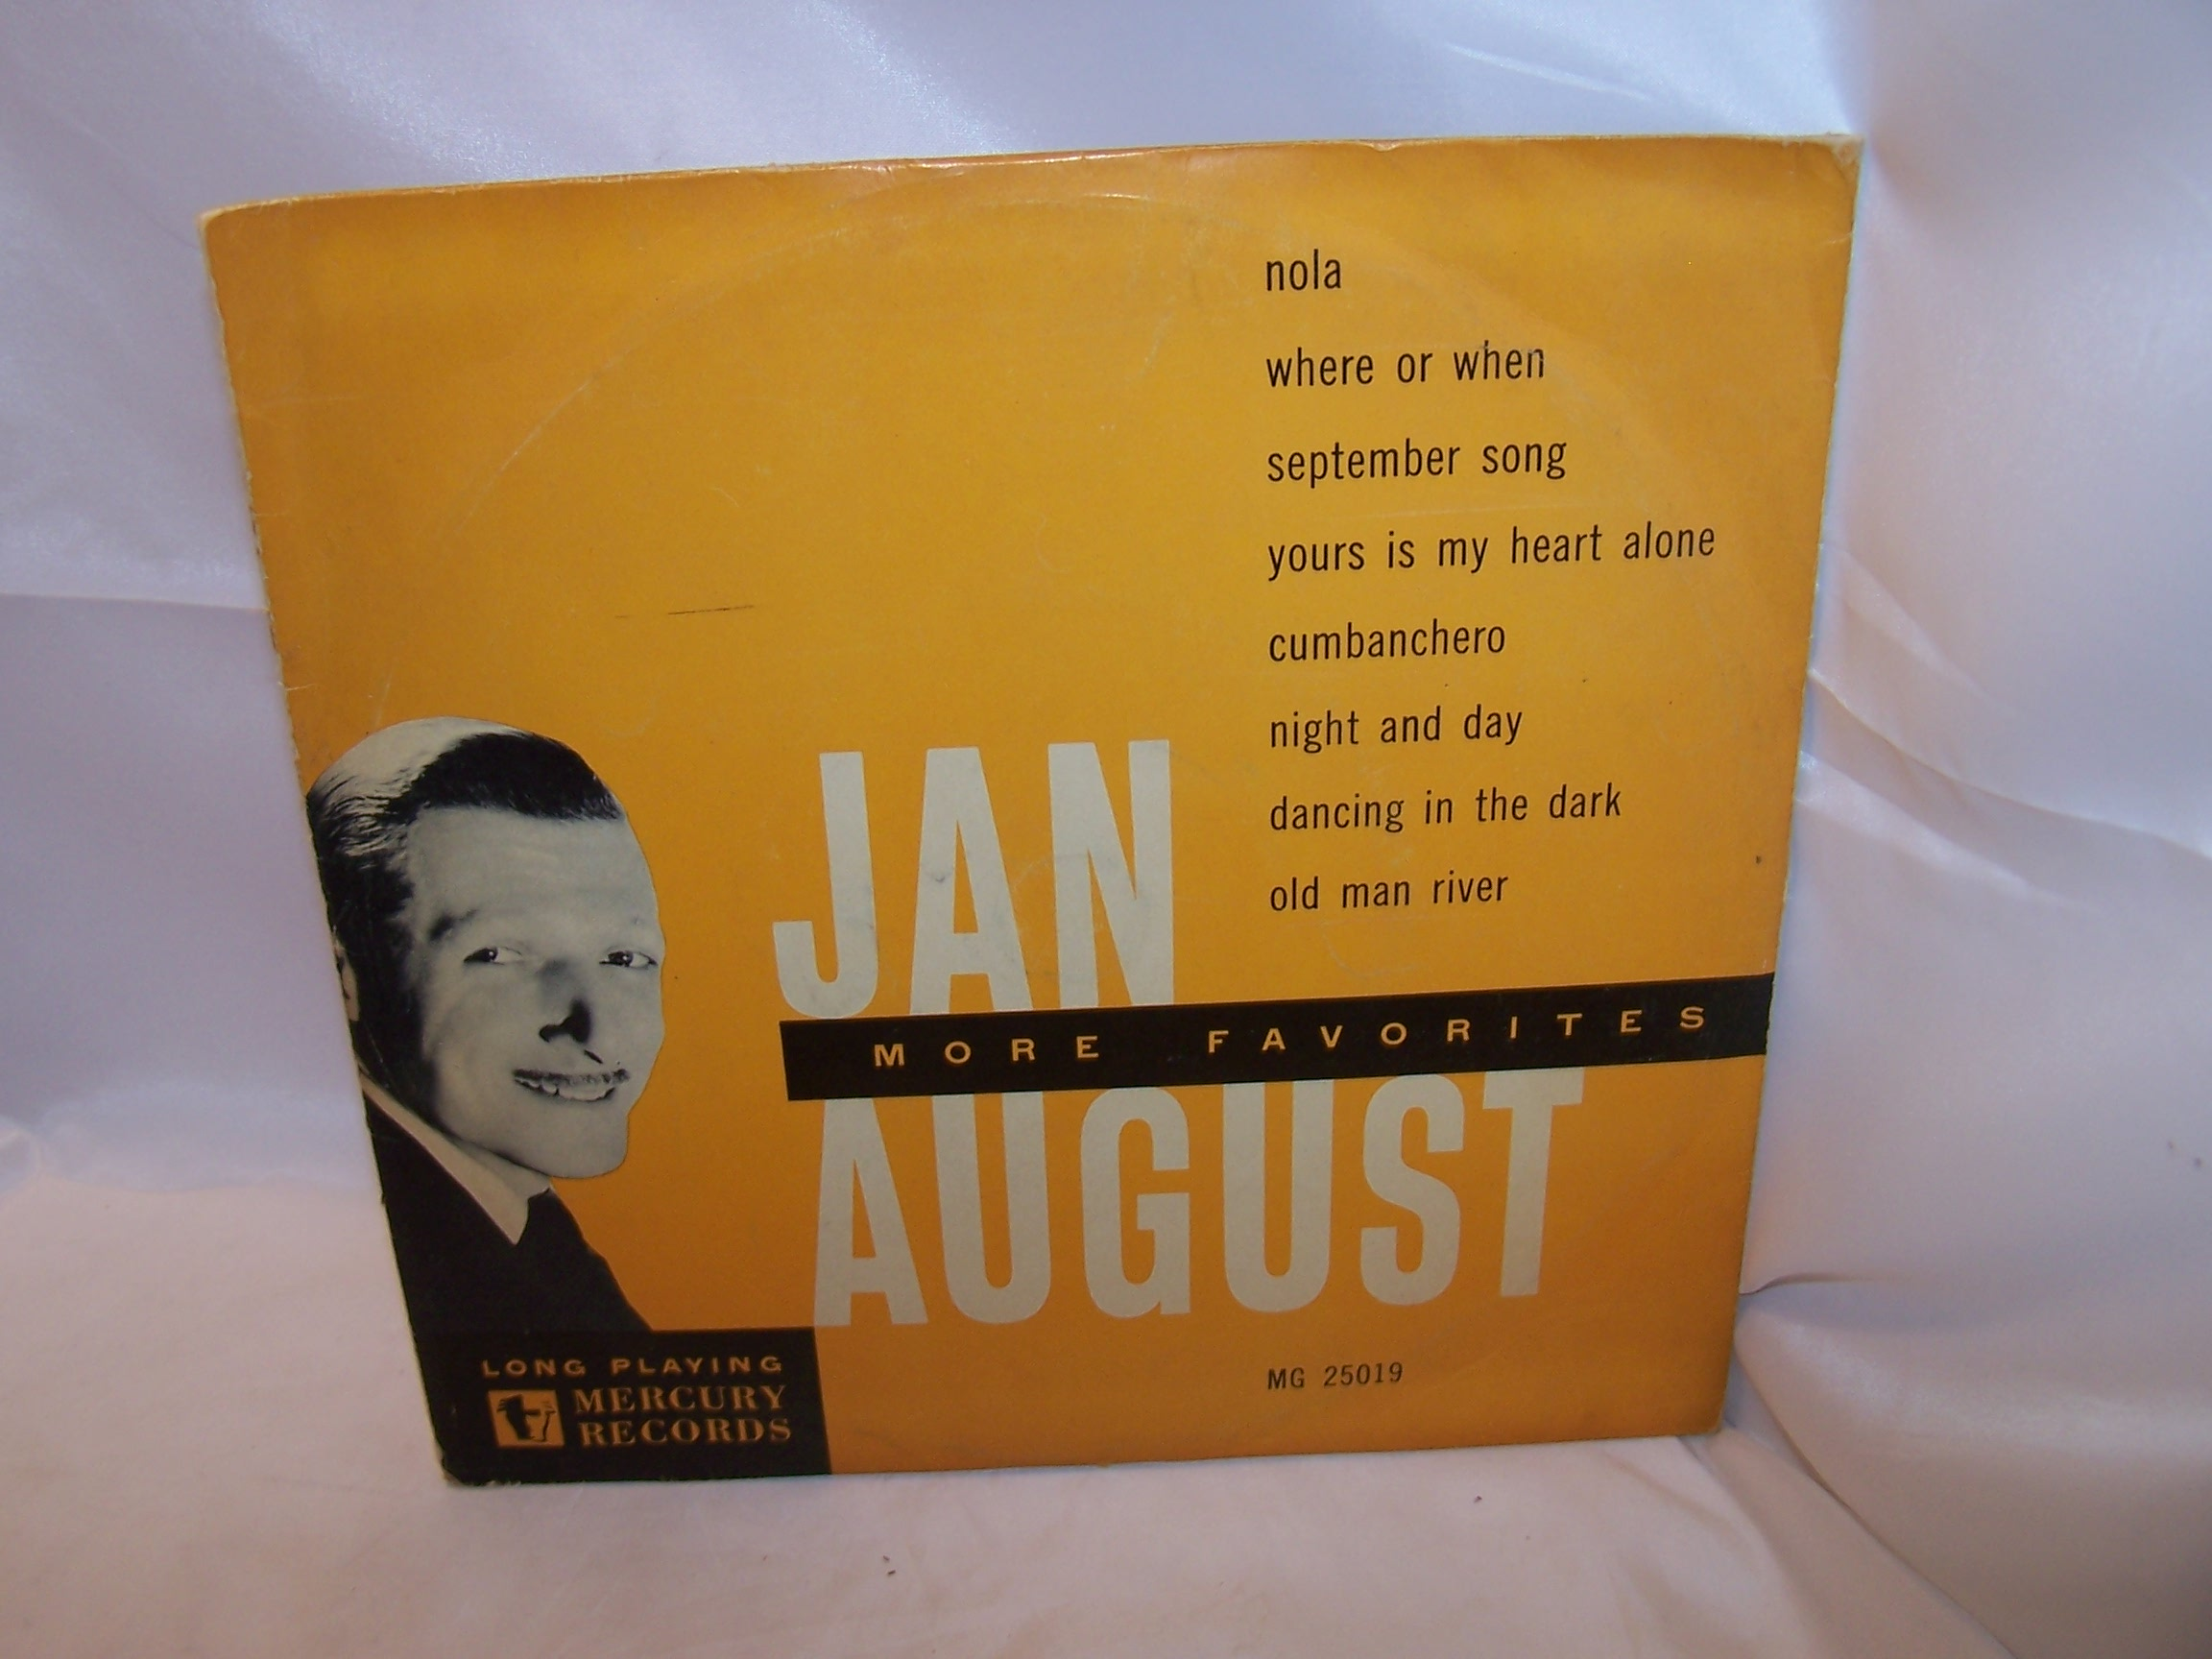 Jan August, More Favorites, LP Record, Mercury Records